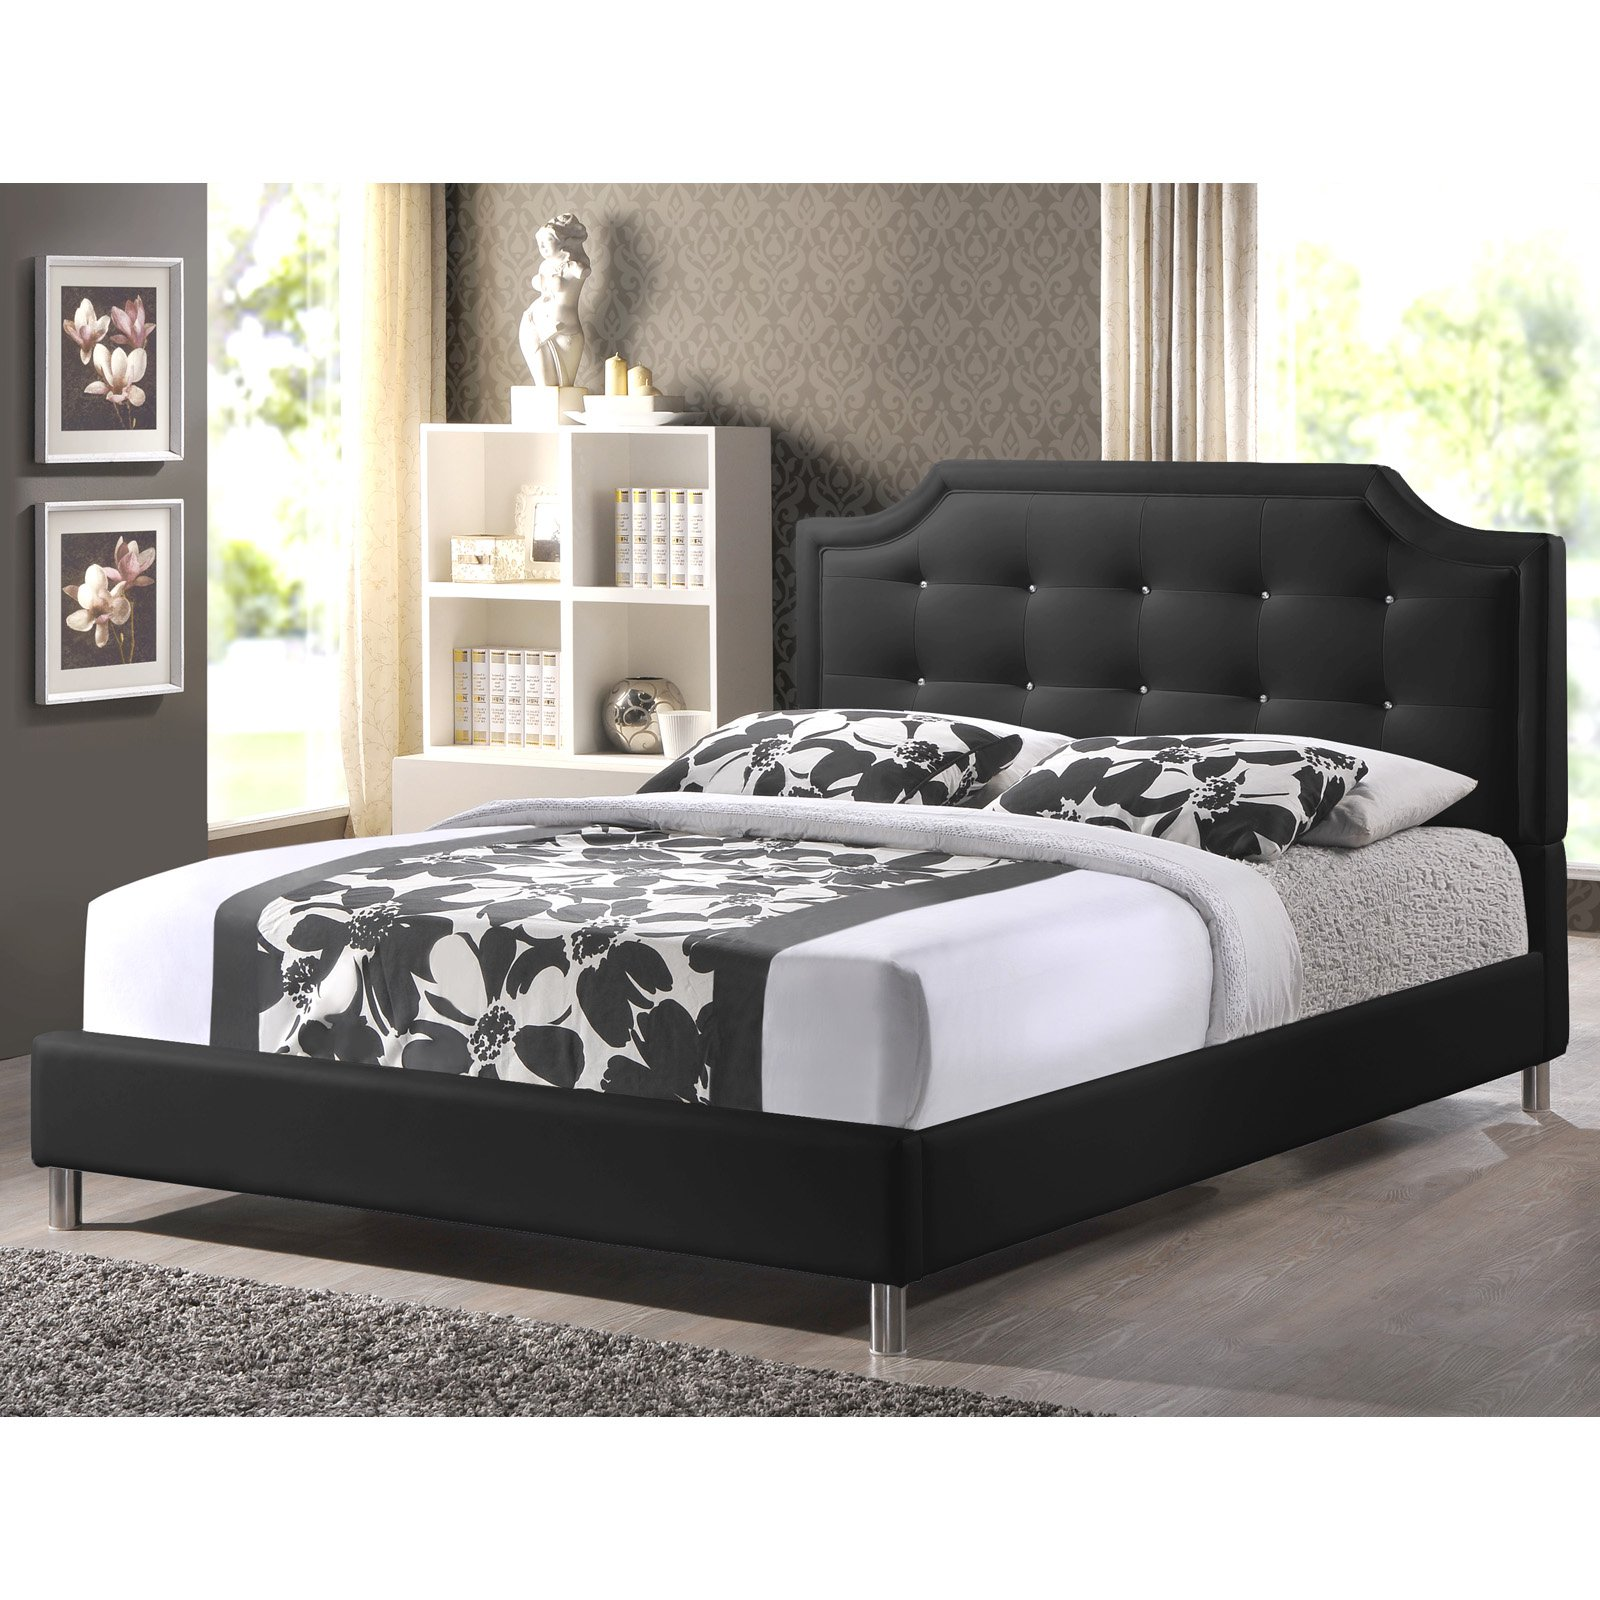 Buy A Bed Baxton Studio Carlotta Modern Bed With Upholstered Headboard Multiple Sizes Multiple Colors